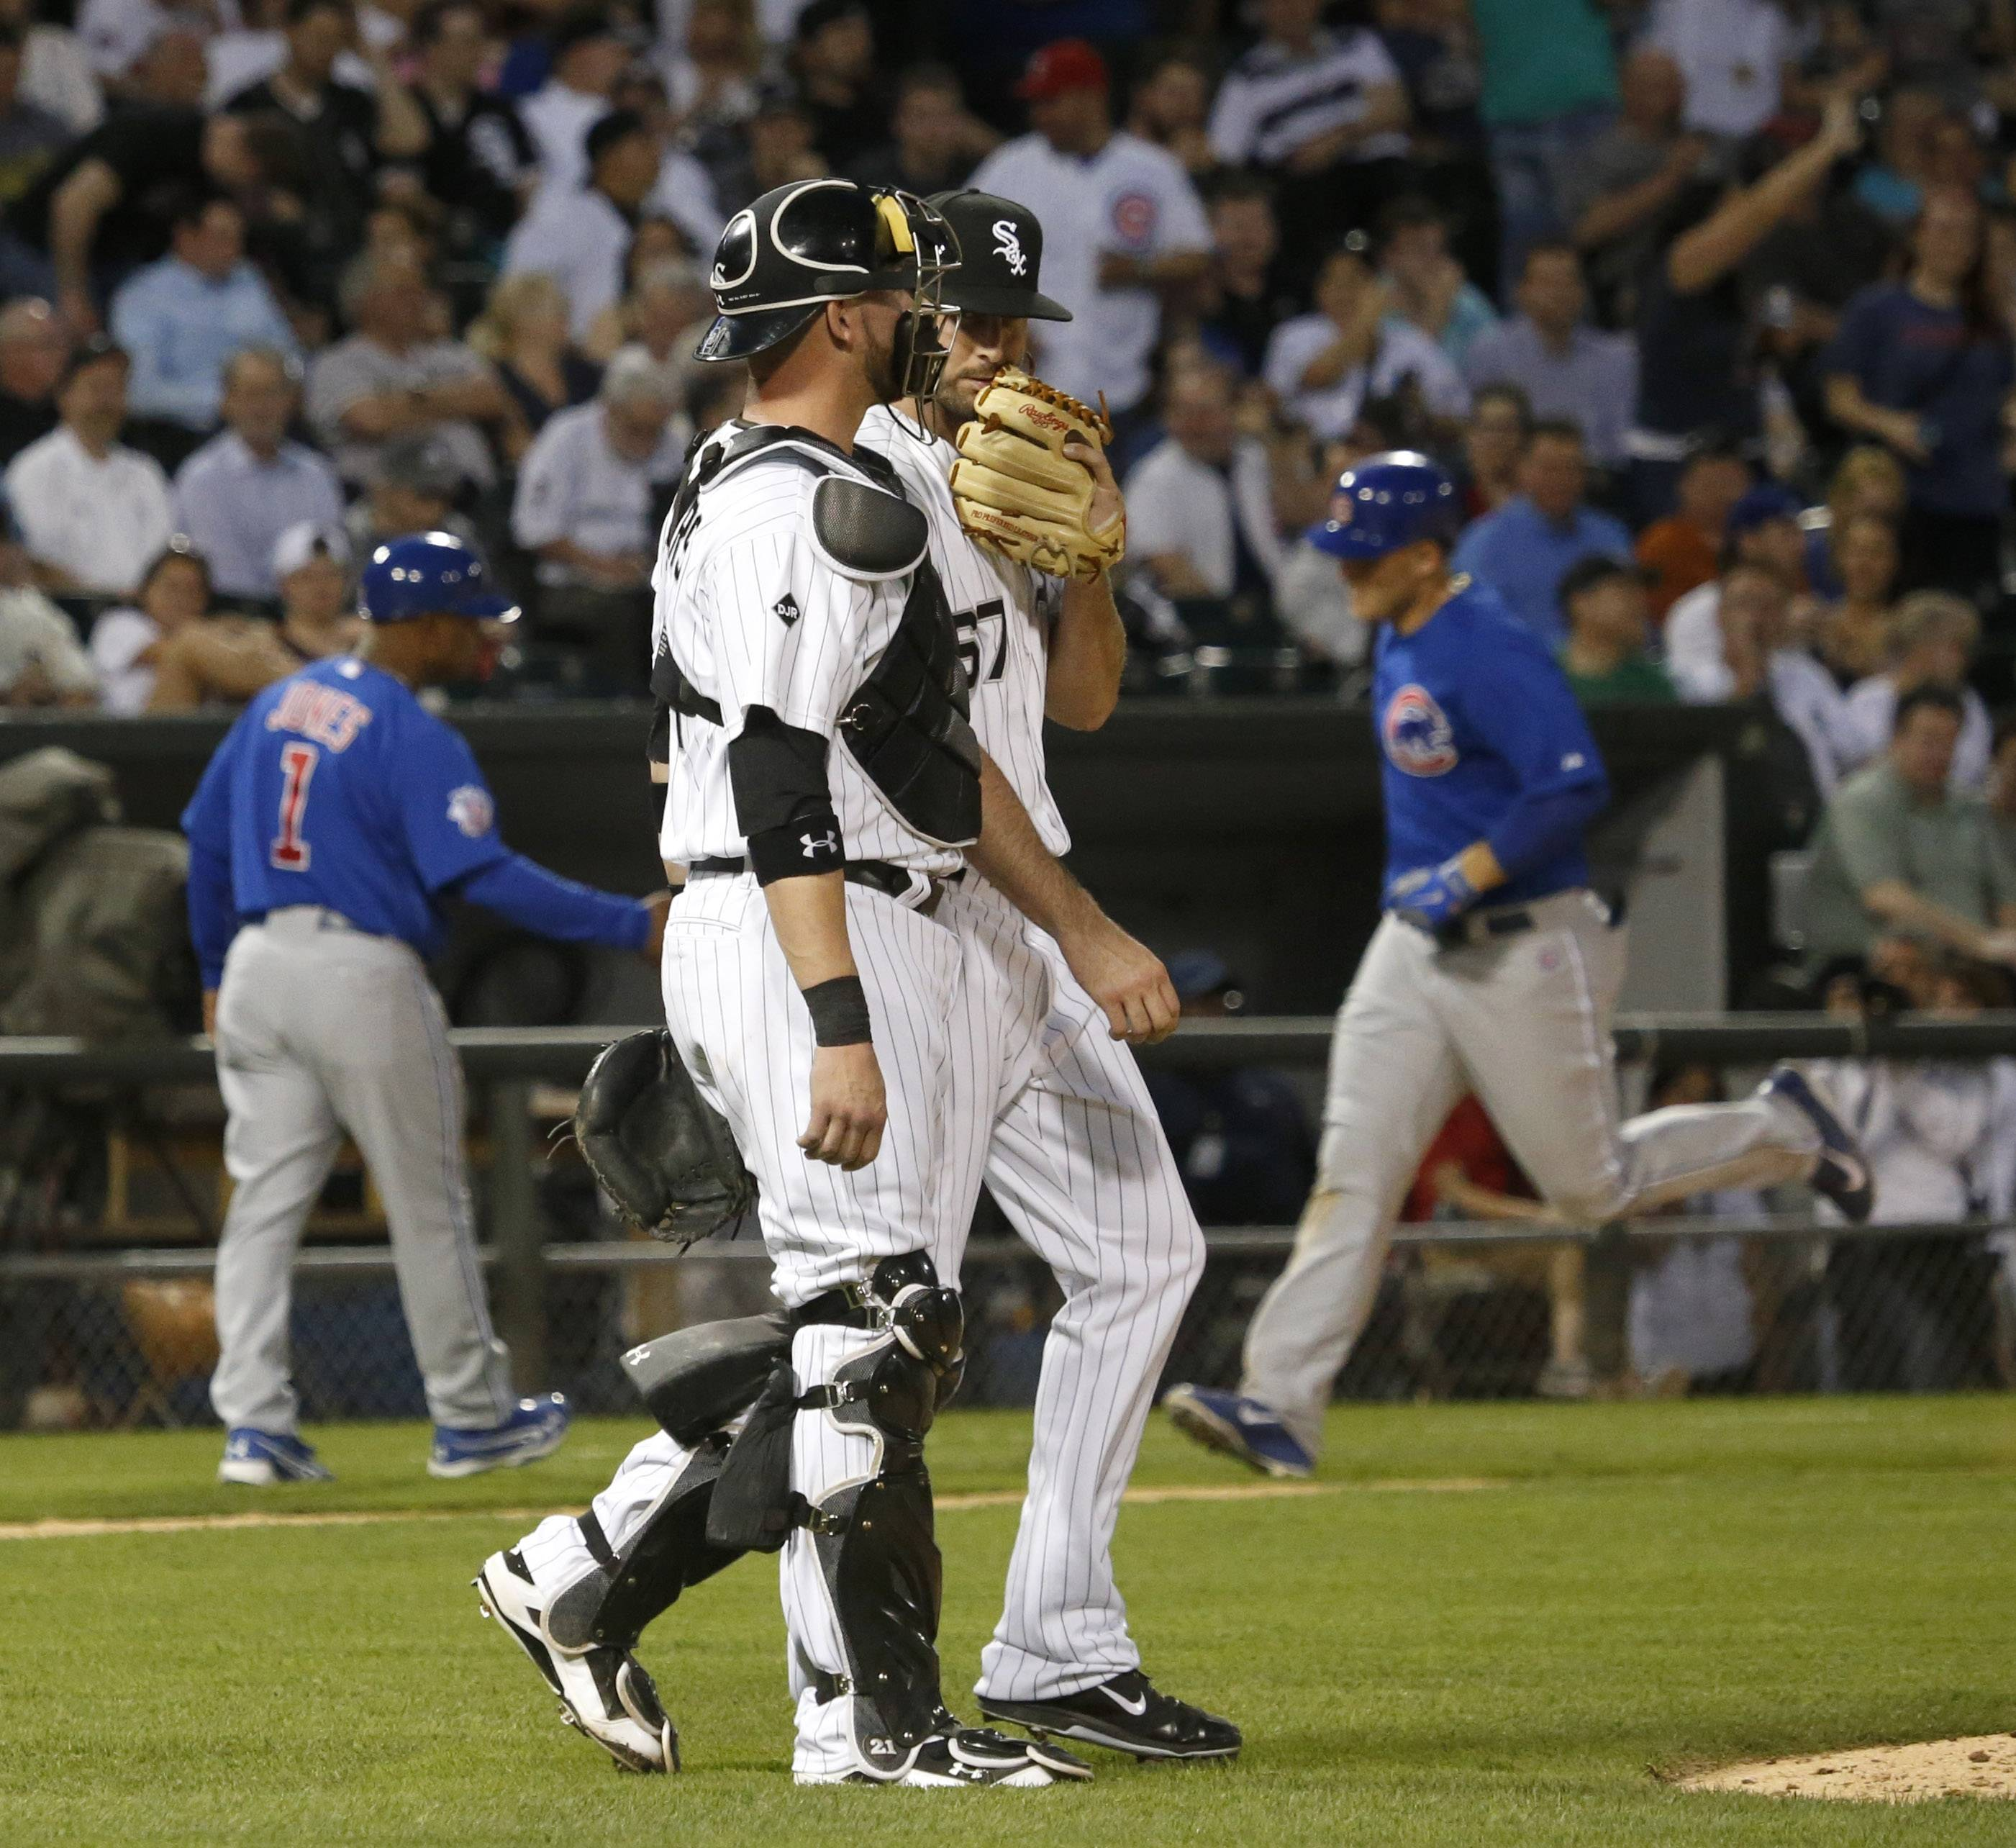 Chicago White Sox starting pitcher Scott Carroll (67) walks back to the mound with catcher Tyler Flowers after giving up a two-run home run to Chicago Cubs' Anthony Rizzo, background right, during the third inning of an interleague baseball game Thursday, May 8, 2014, in Chicago. (AP Photo/Charles Rex Arbogast)